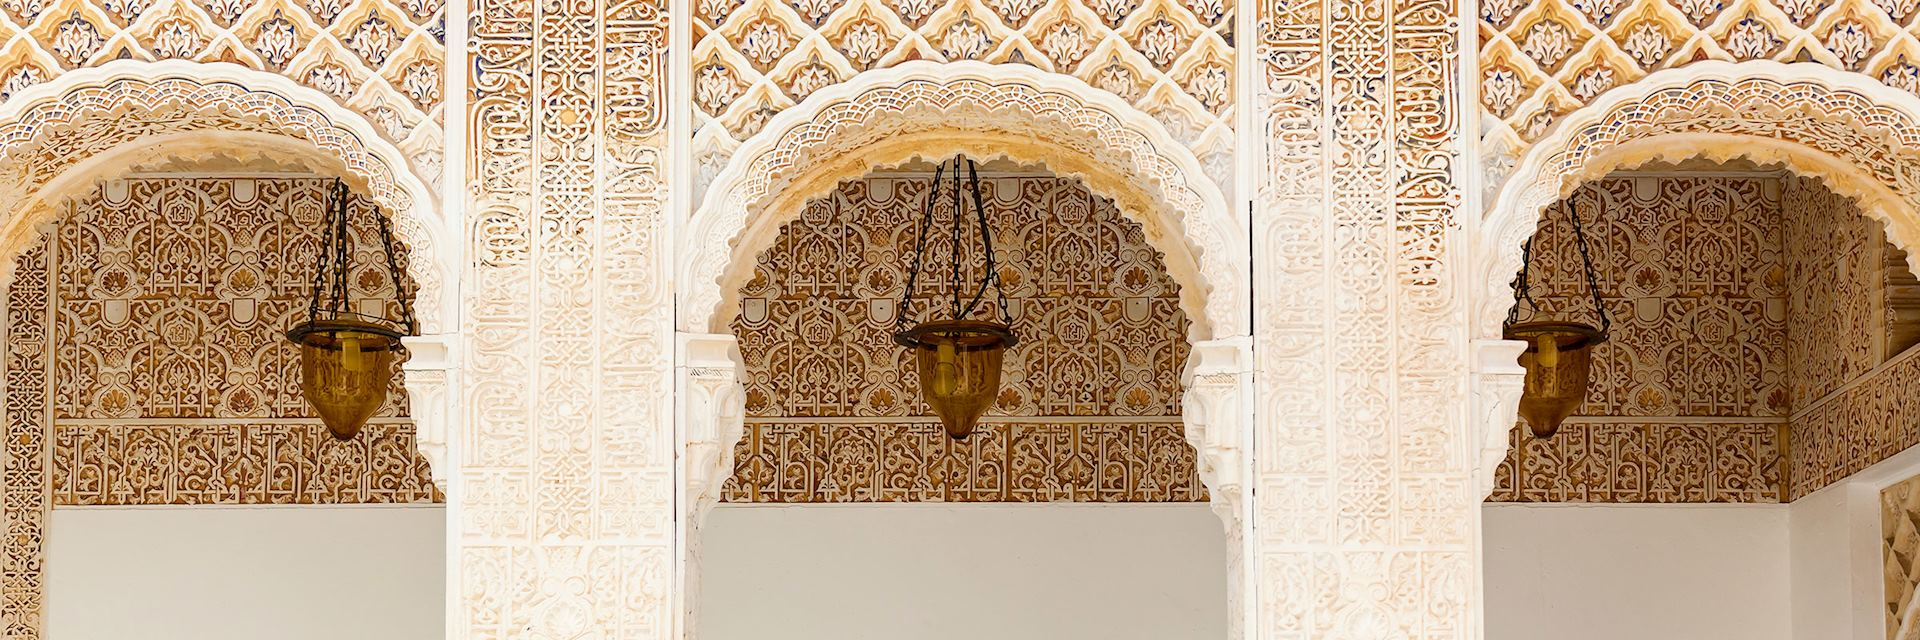 Moorish detail, Alhambra